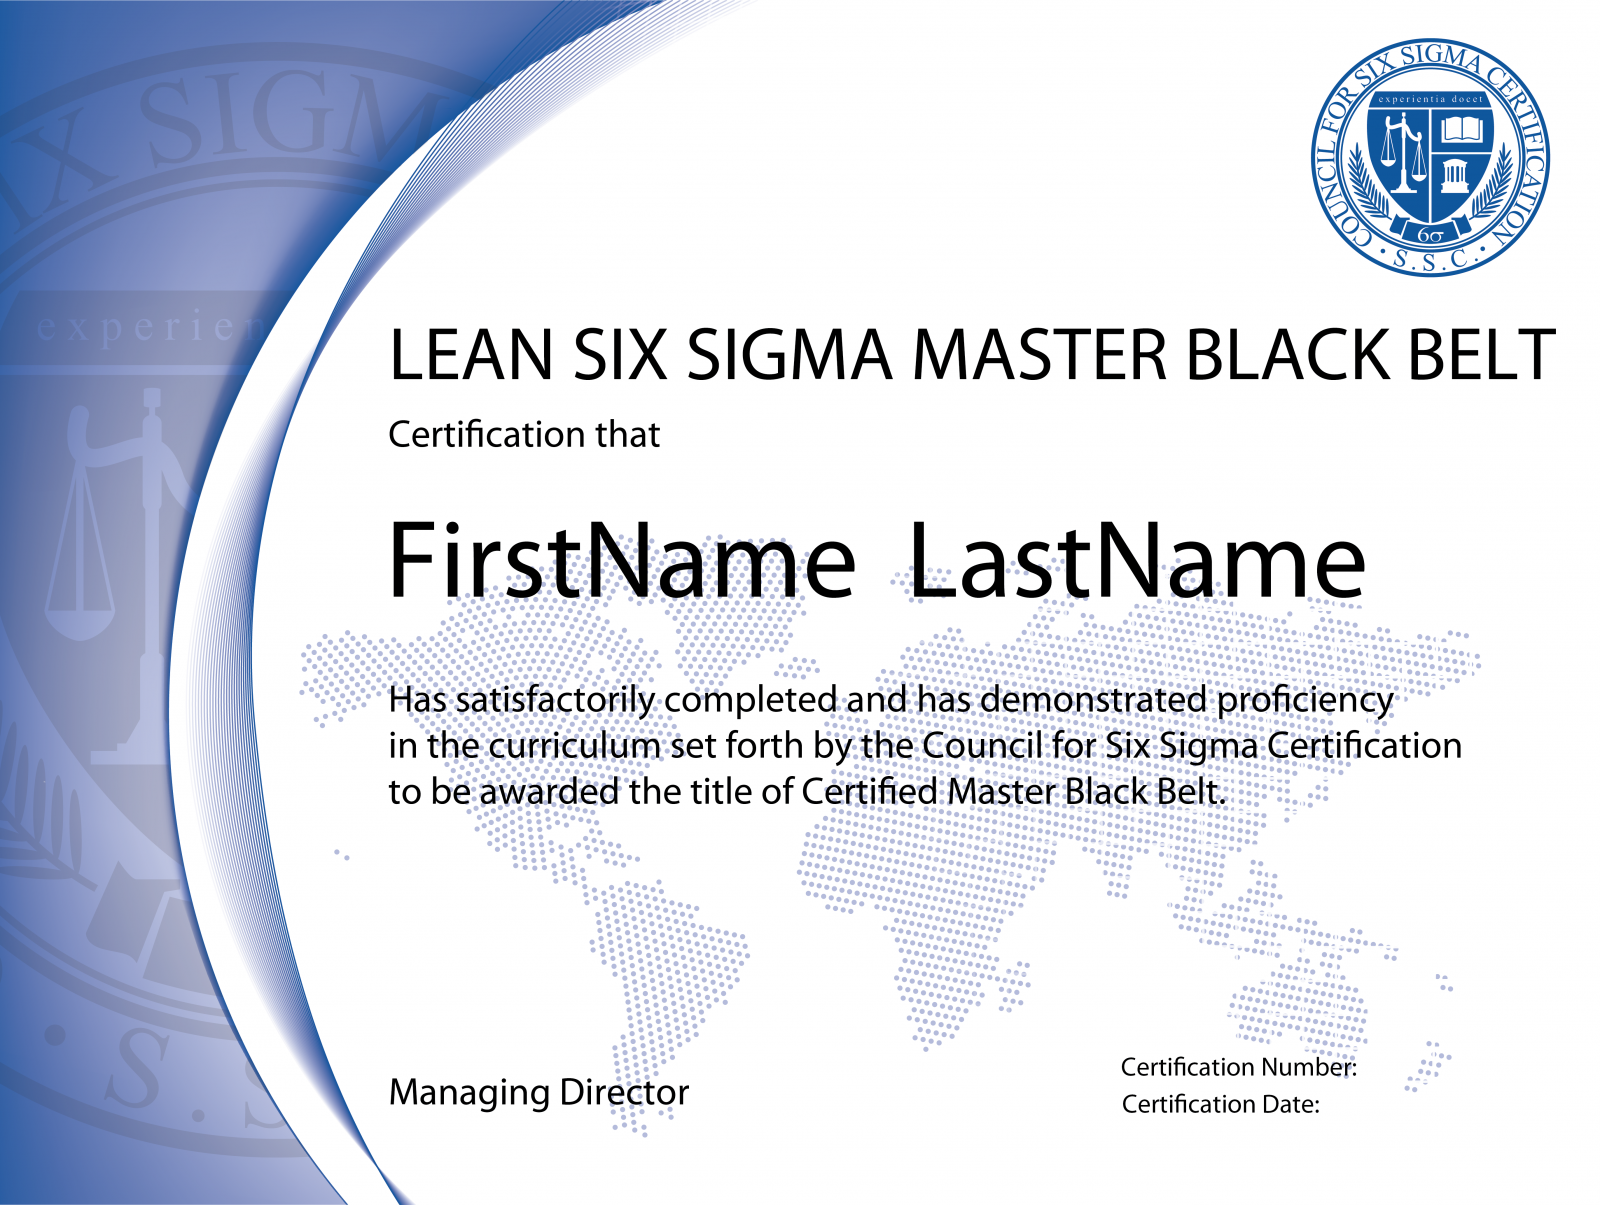 Lean Six Sigma Master Black Belt Certification The Council For Six